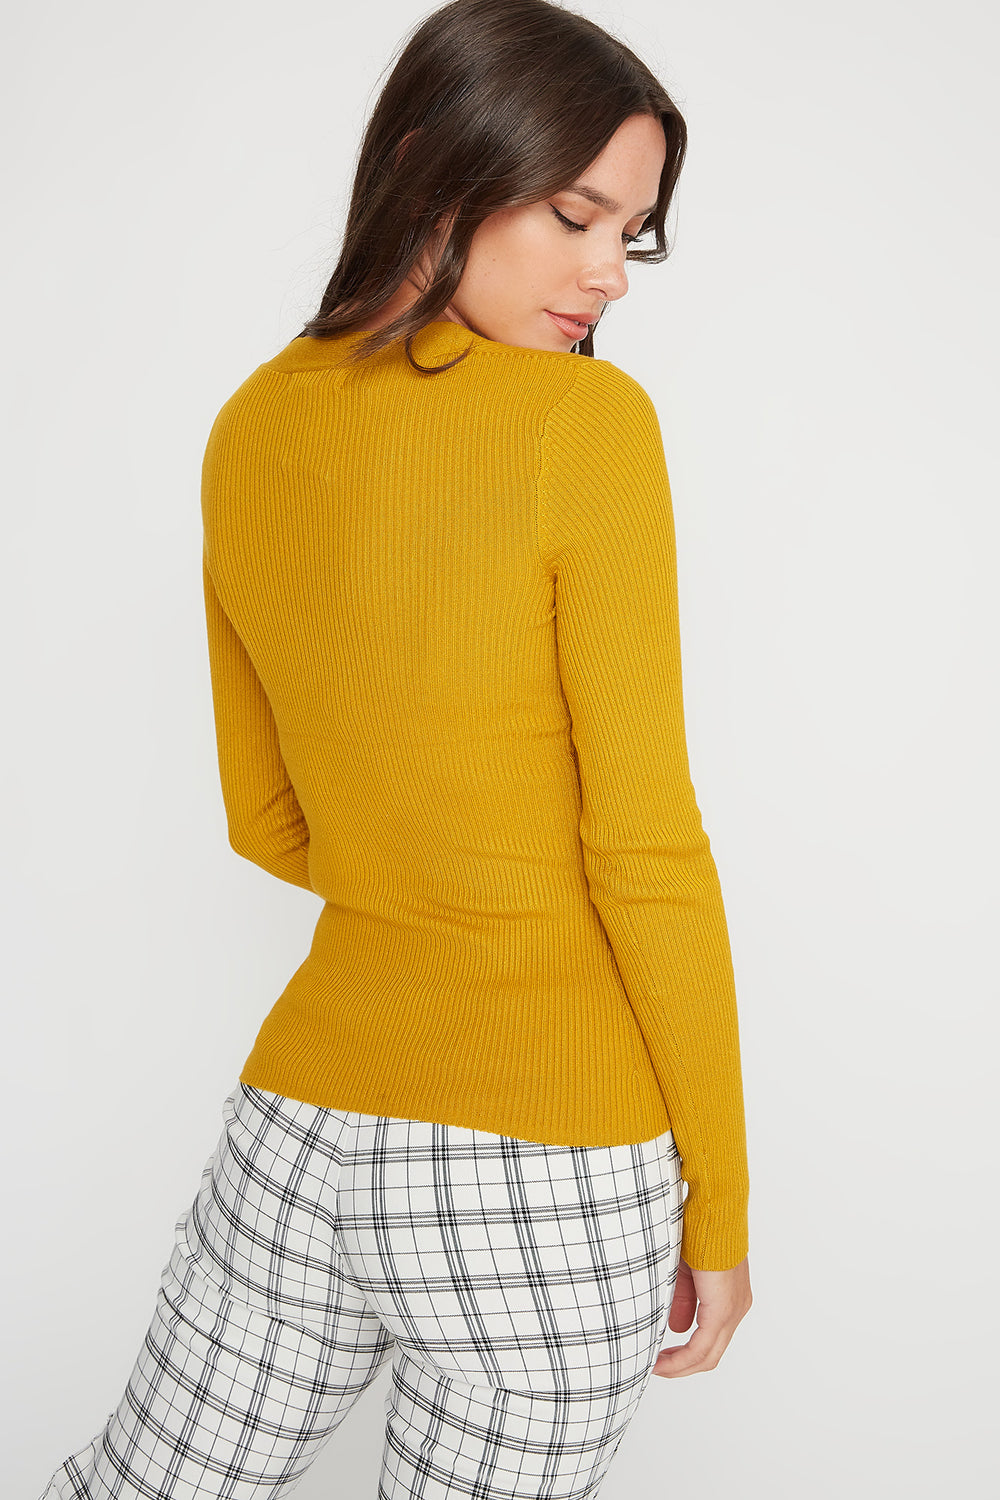 V-Neck Ribbed Knit Lightweight Sweater Yellow